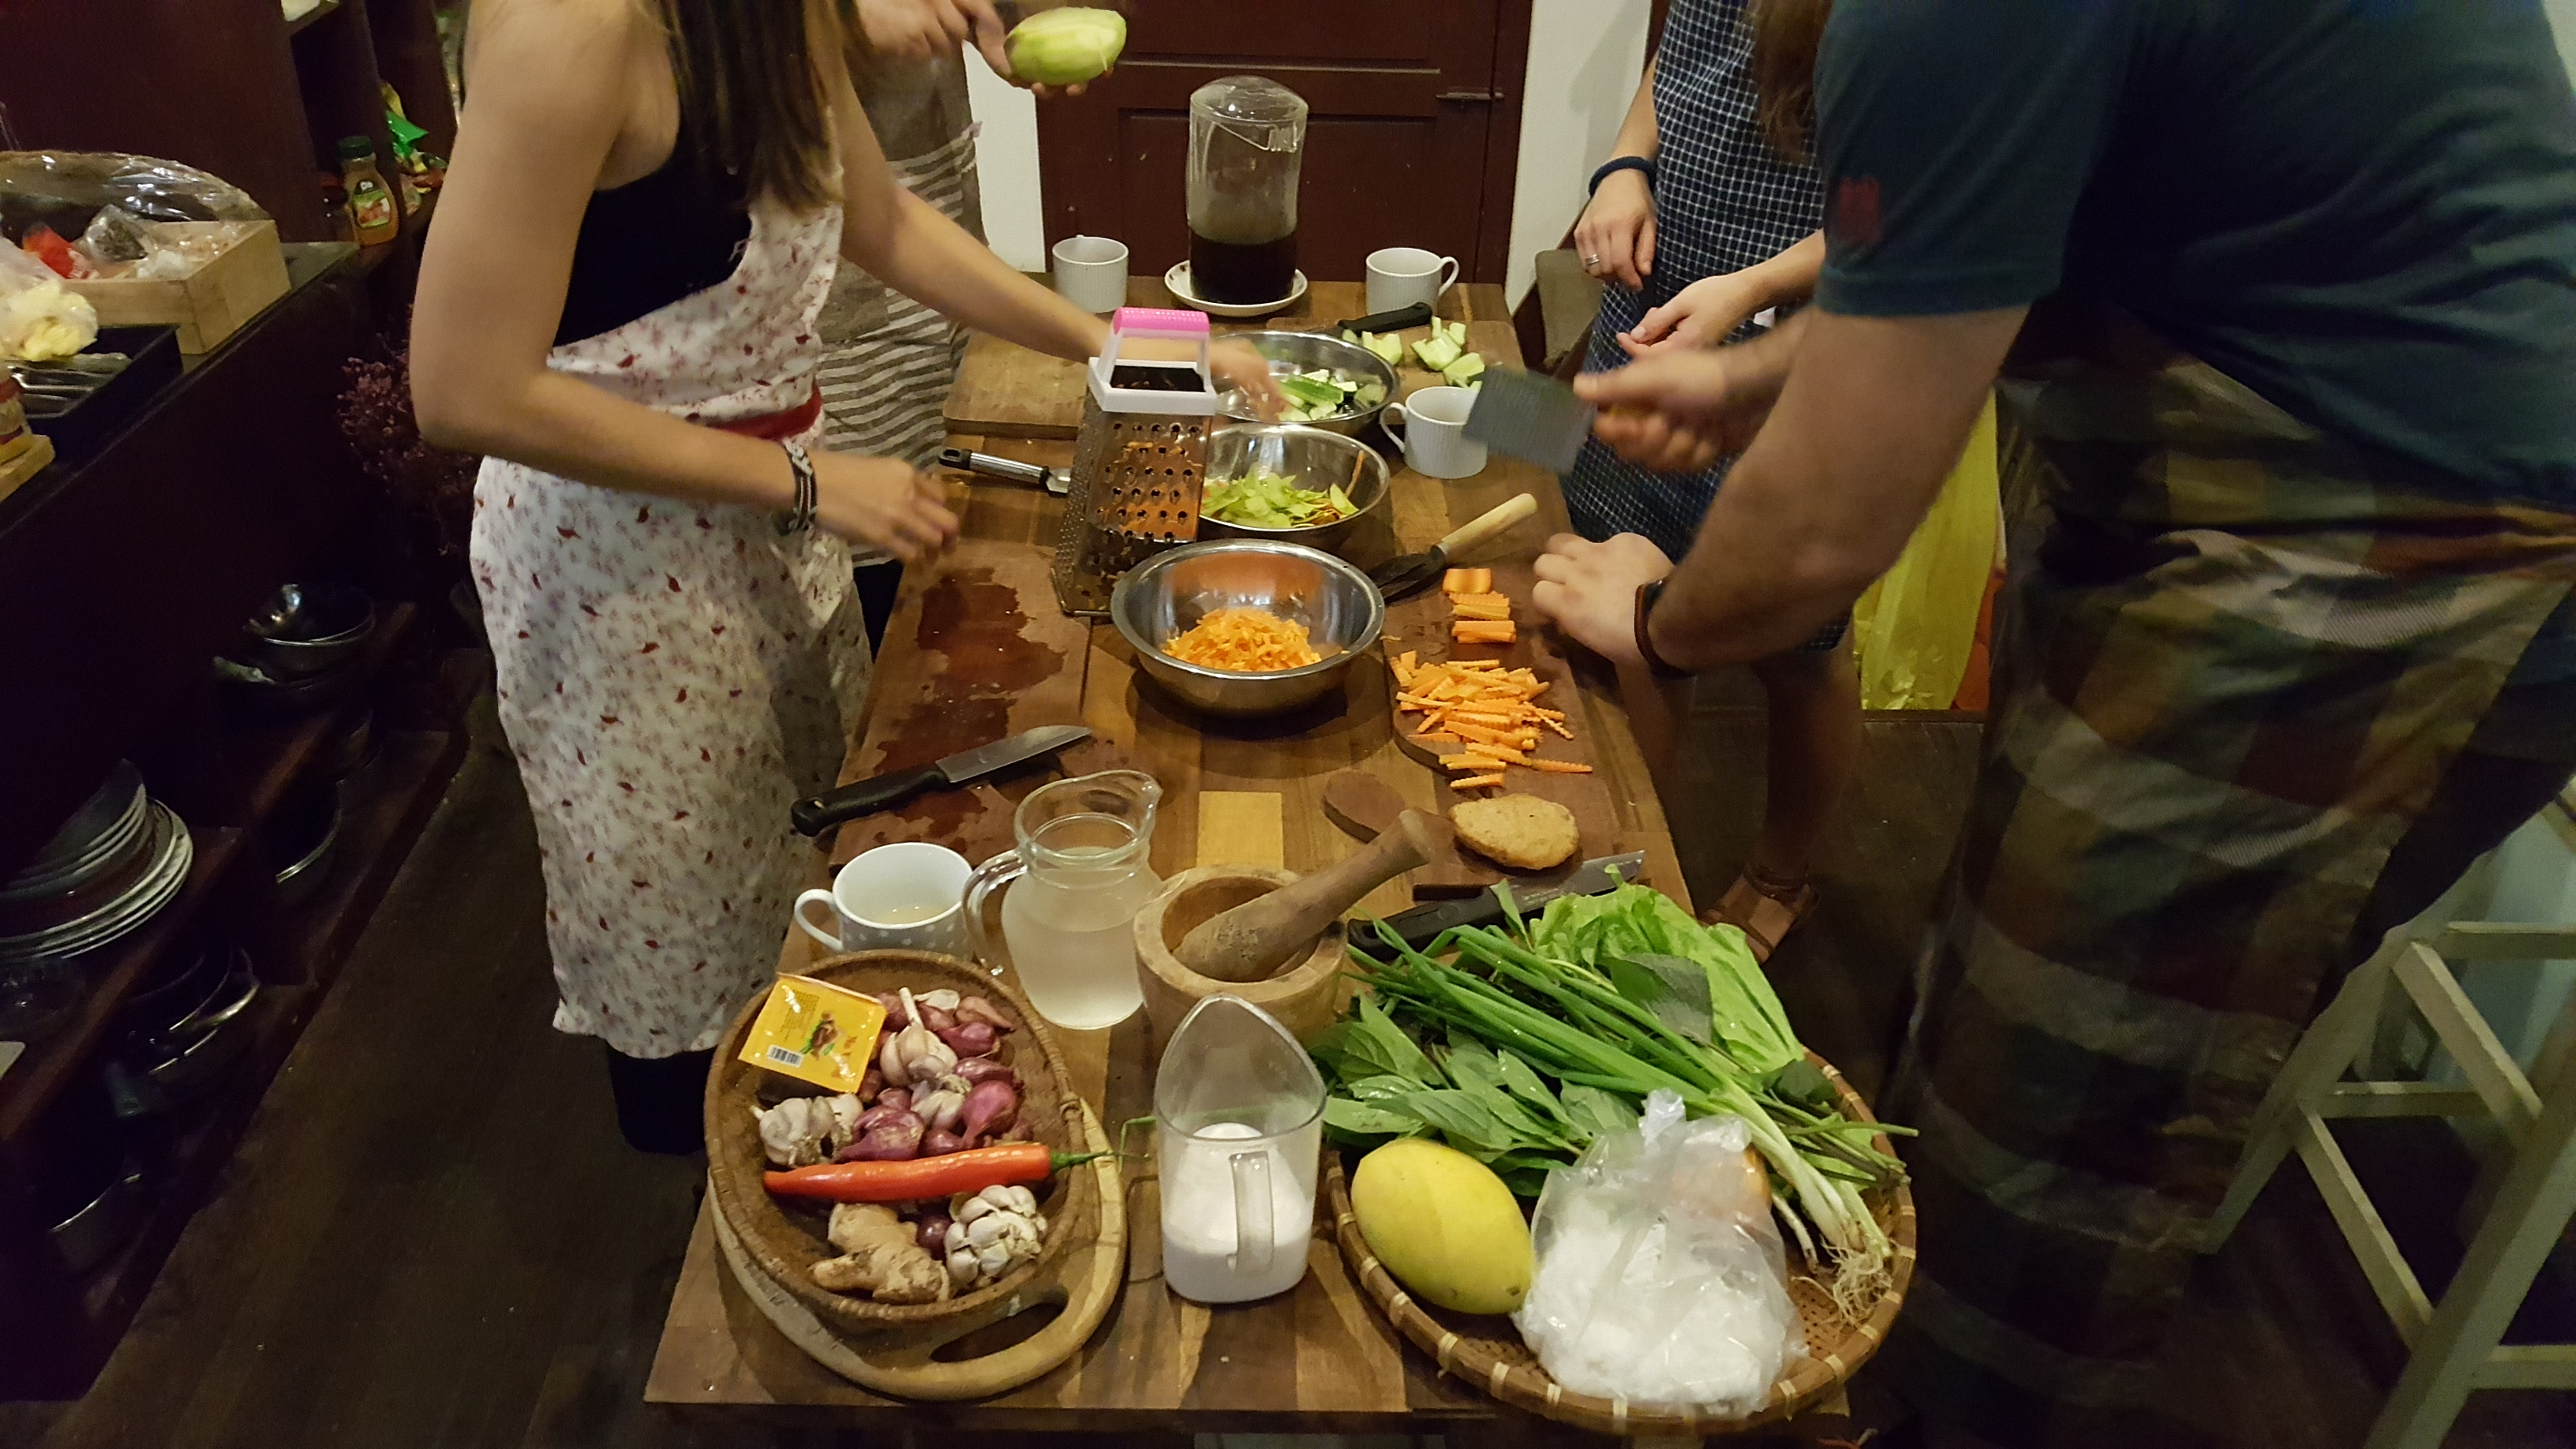 A table full of dishes of vegetables with people chopping and mixing food